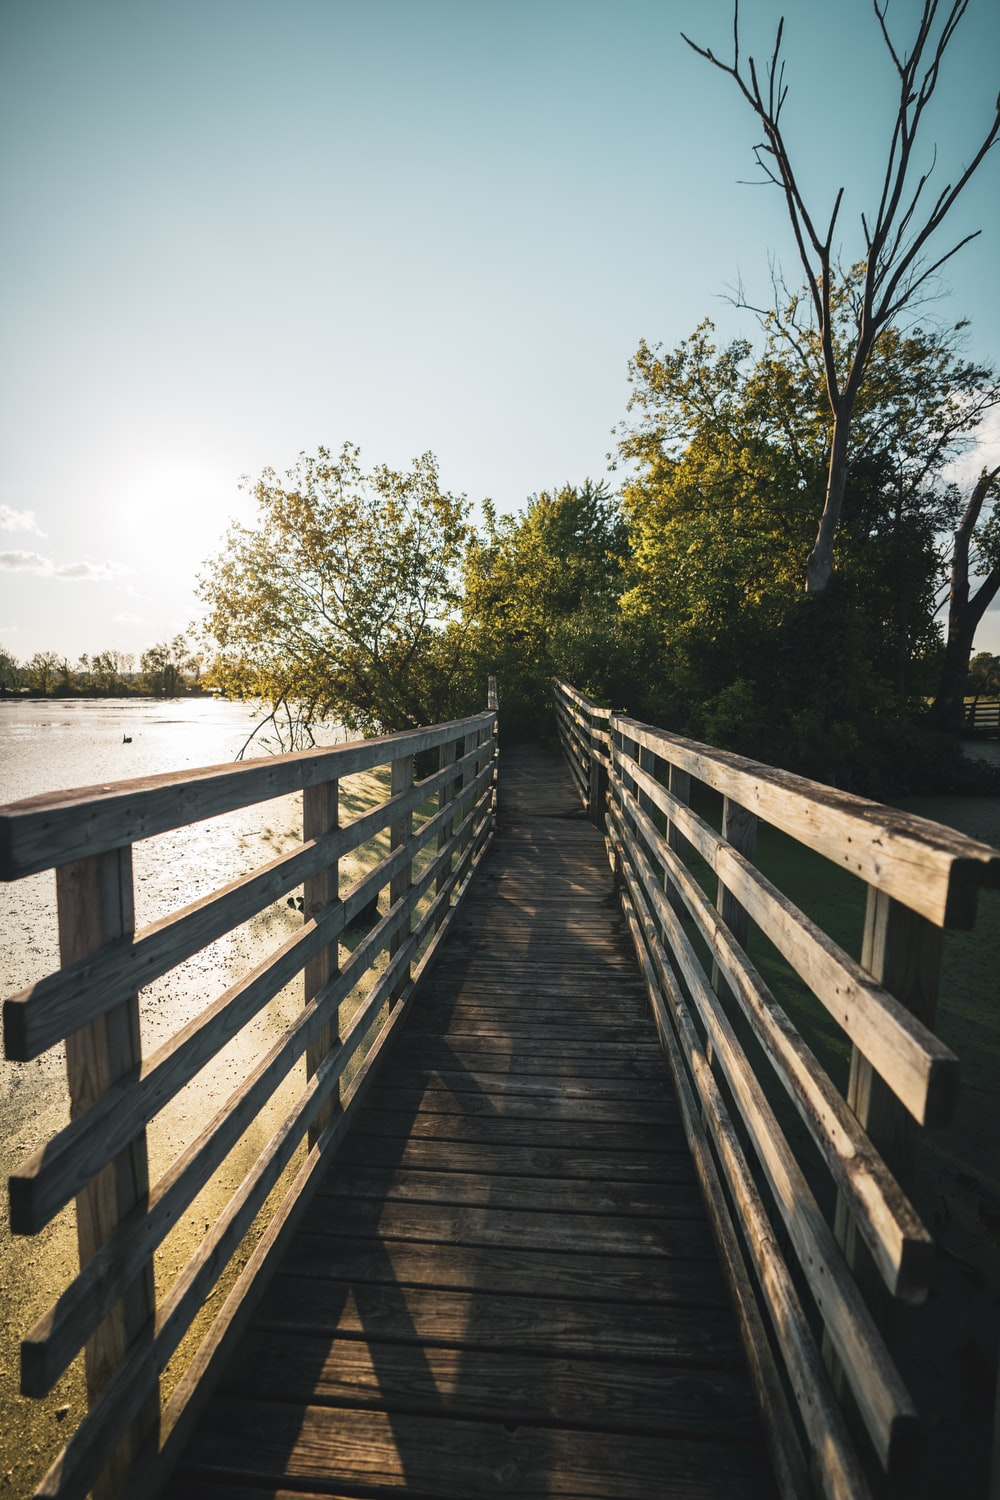 brown wooden bridge over body of water during daytime